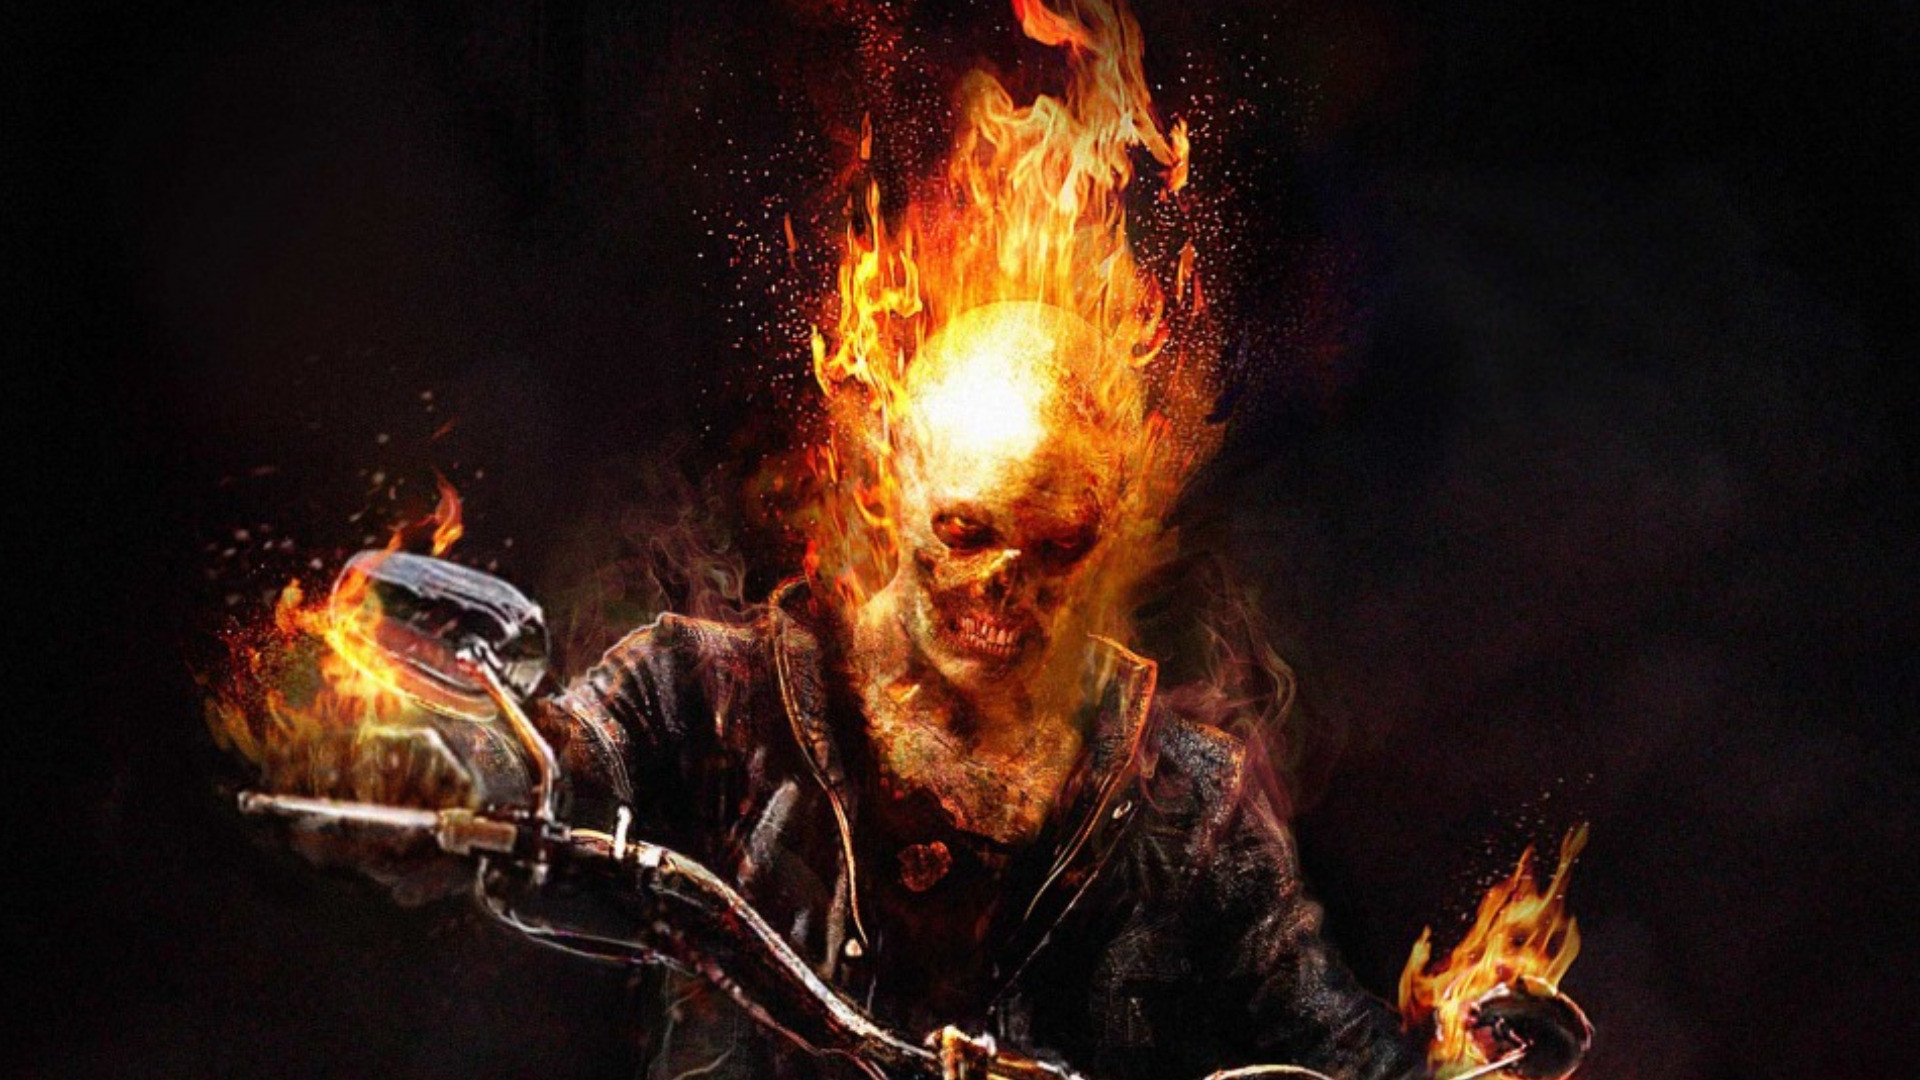 Blue ghost rider wallpaper 59 images - Ghost wallpapers for desktop hd ...